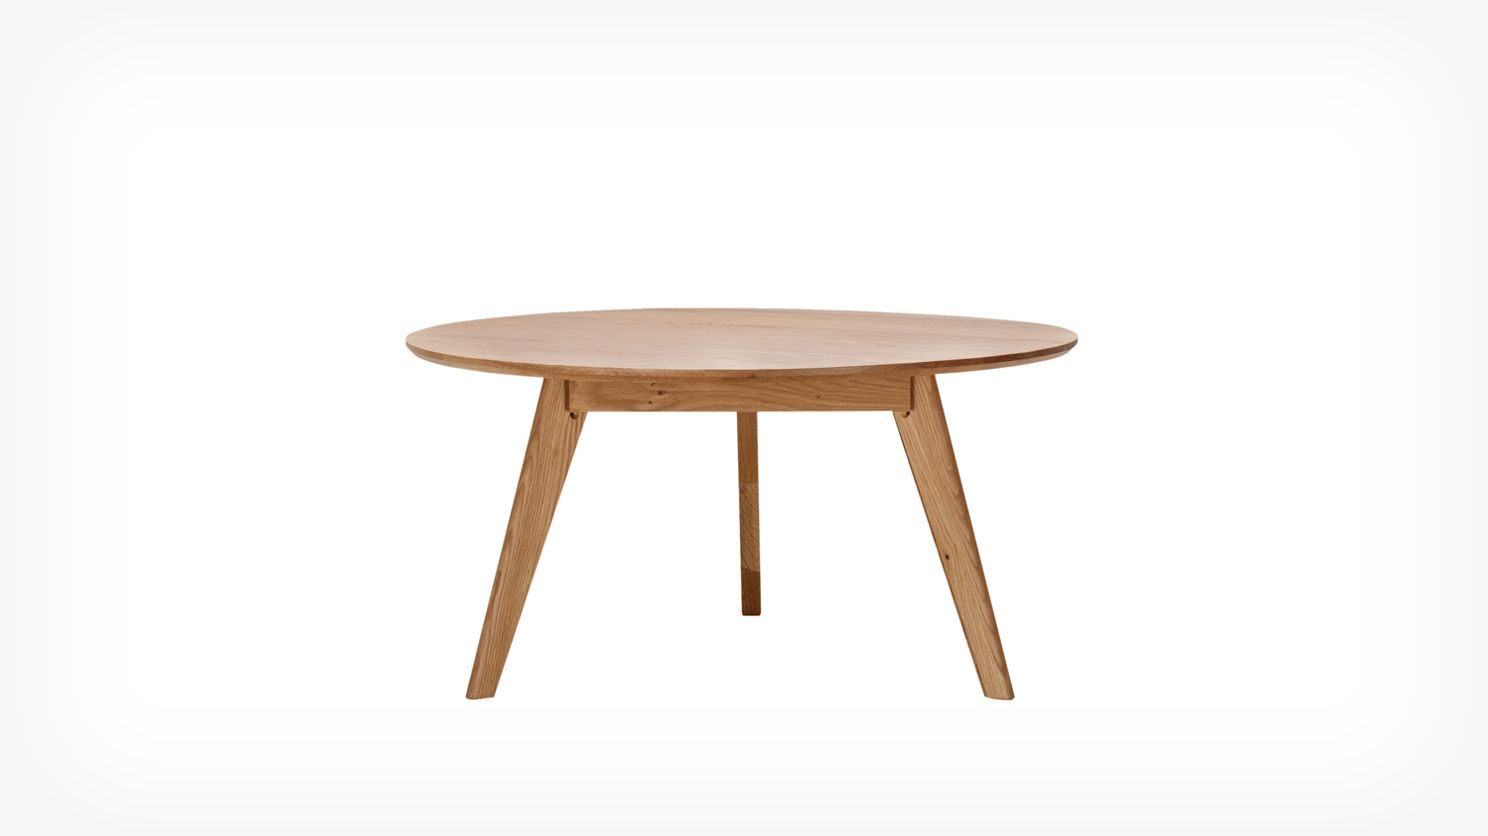 Tate Coffee Table Coffee Table Mid Century Style Coffee Table Table [ 836 x 1488 Pixel ]